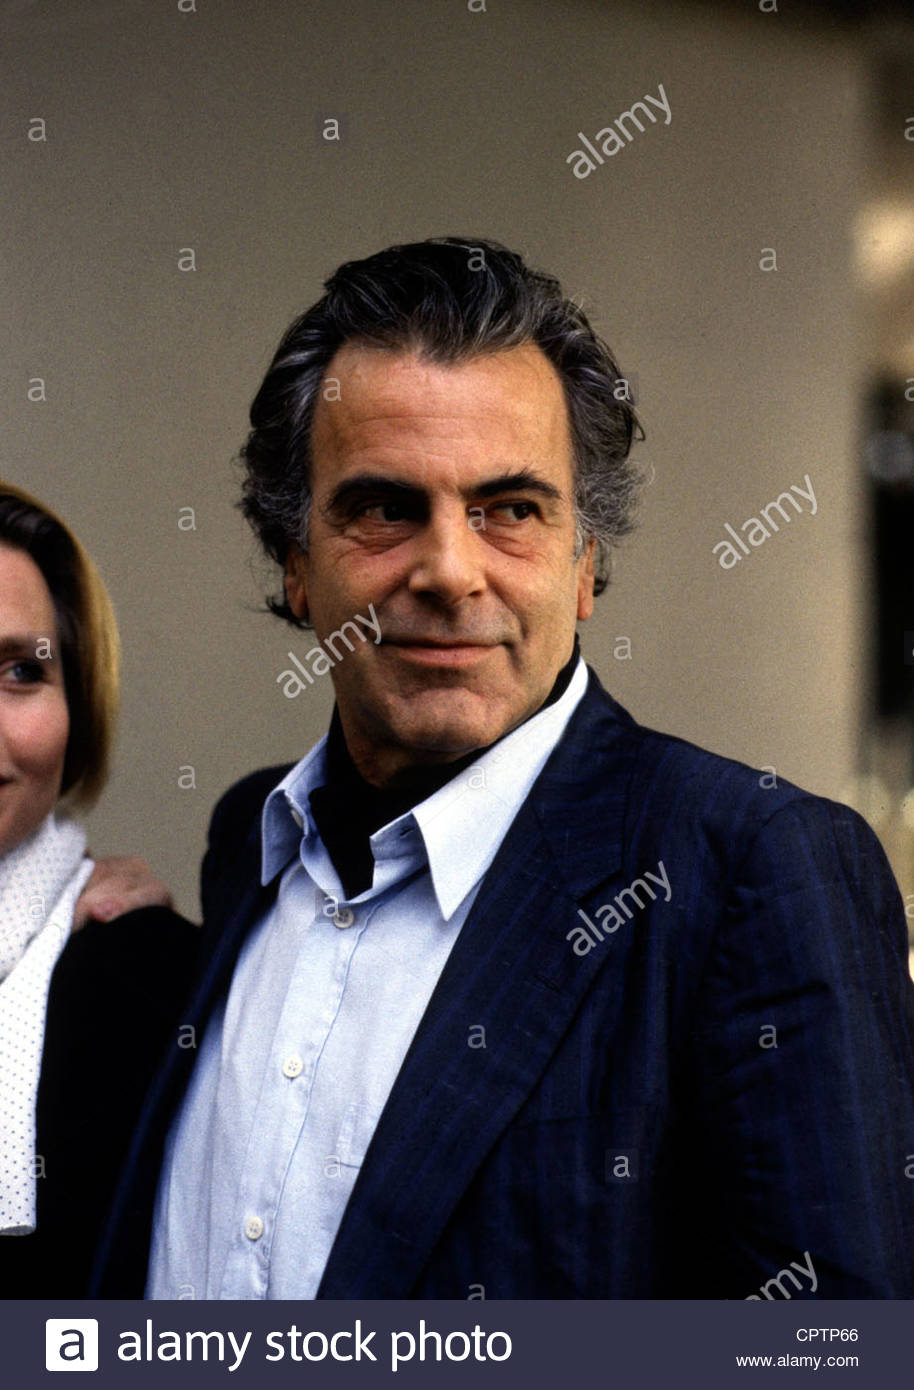 Schell, Maximilian, * 8.12.1930, Austrian actor, portrait, early 1980s, - Stock Image